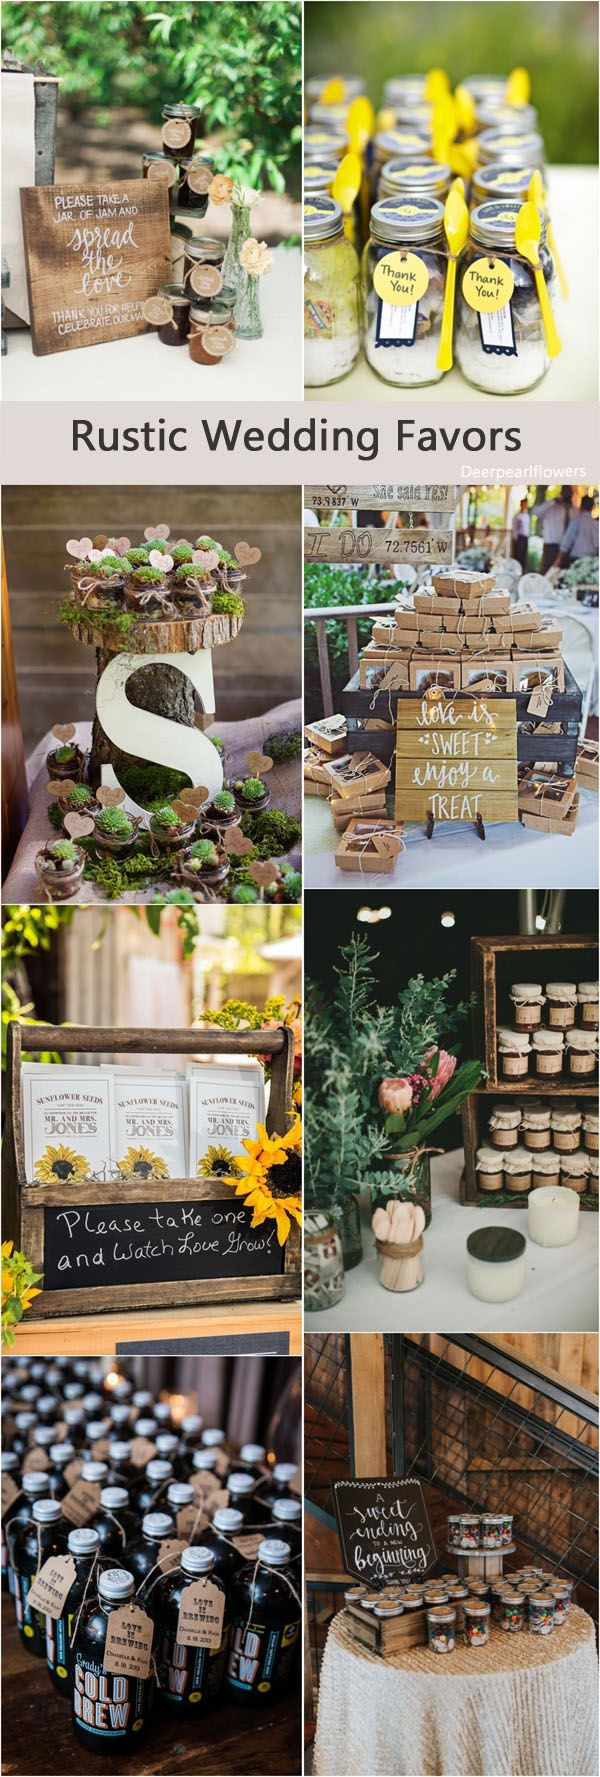 Rustic wedding favors - rustic wedding details  / http://www.deerpearlflowers.com/rustic-wedding-details-and-ideas/3/